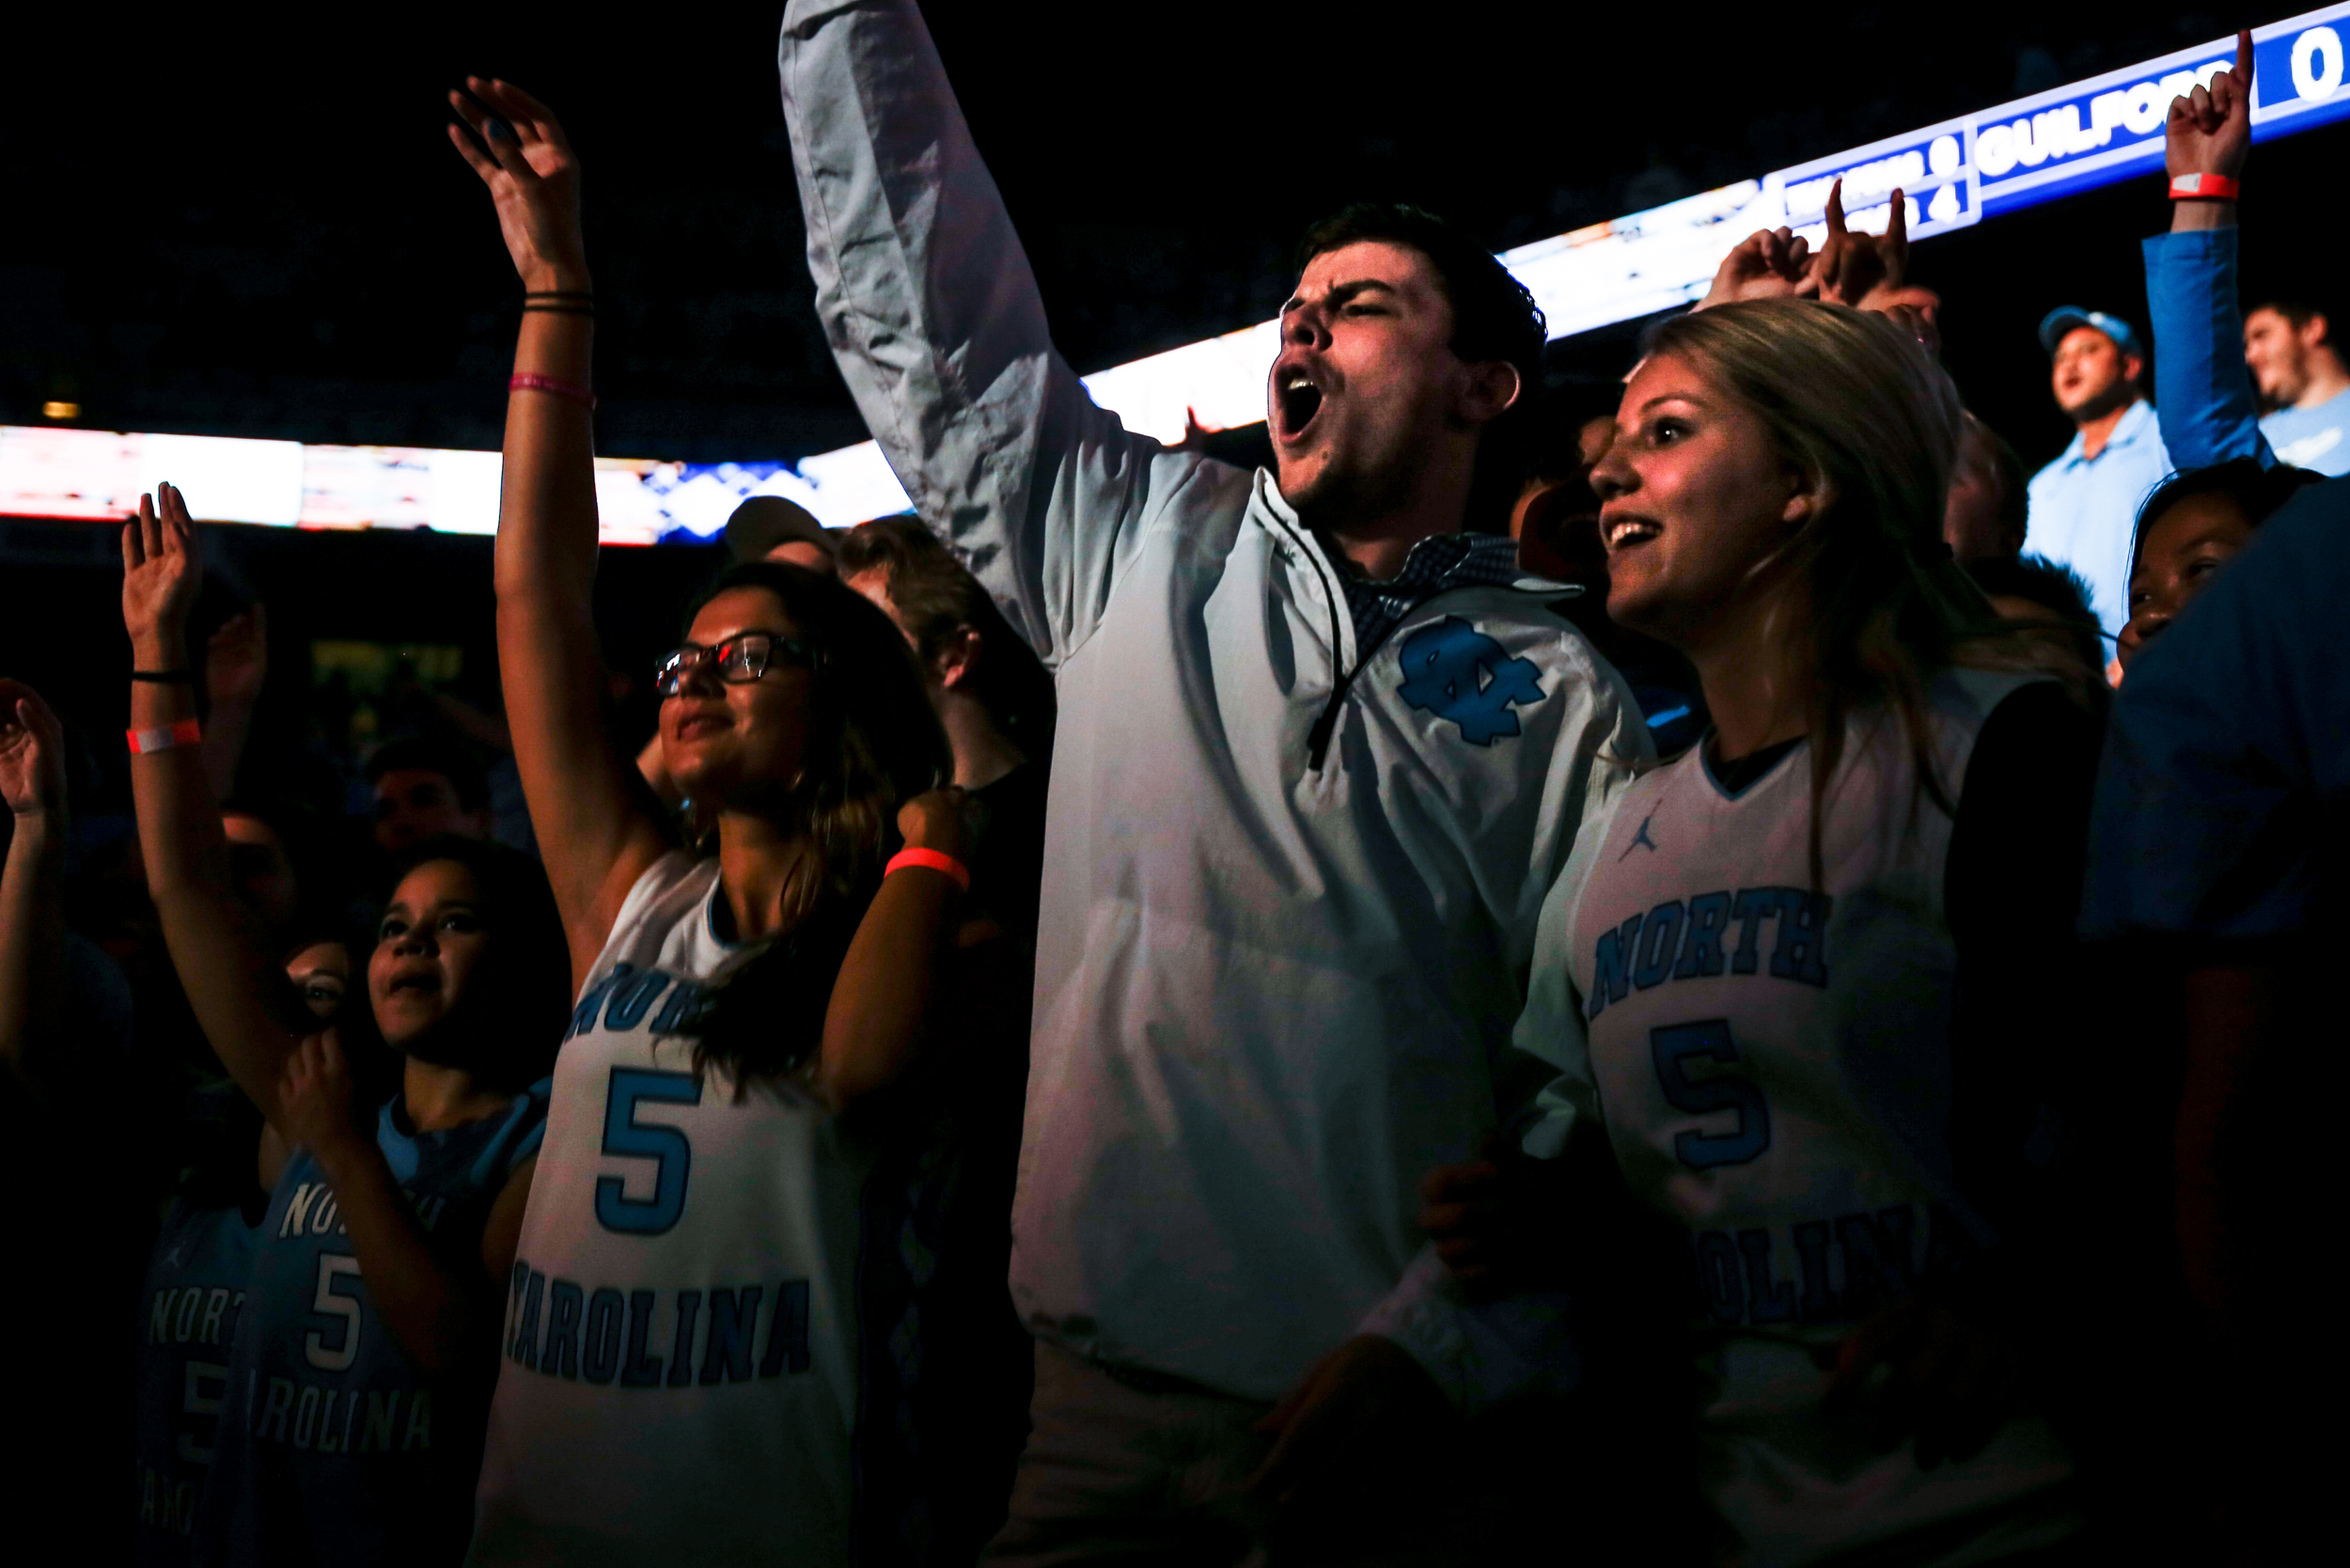 UNC fans cheer during the North Carolina team intoductions before their season's opening exhibition basketball game at the Dean Smith Center on Friday, Nov. 6, 2015. UNC defeated Guilford 99-49.